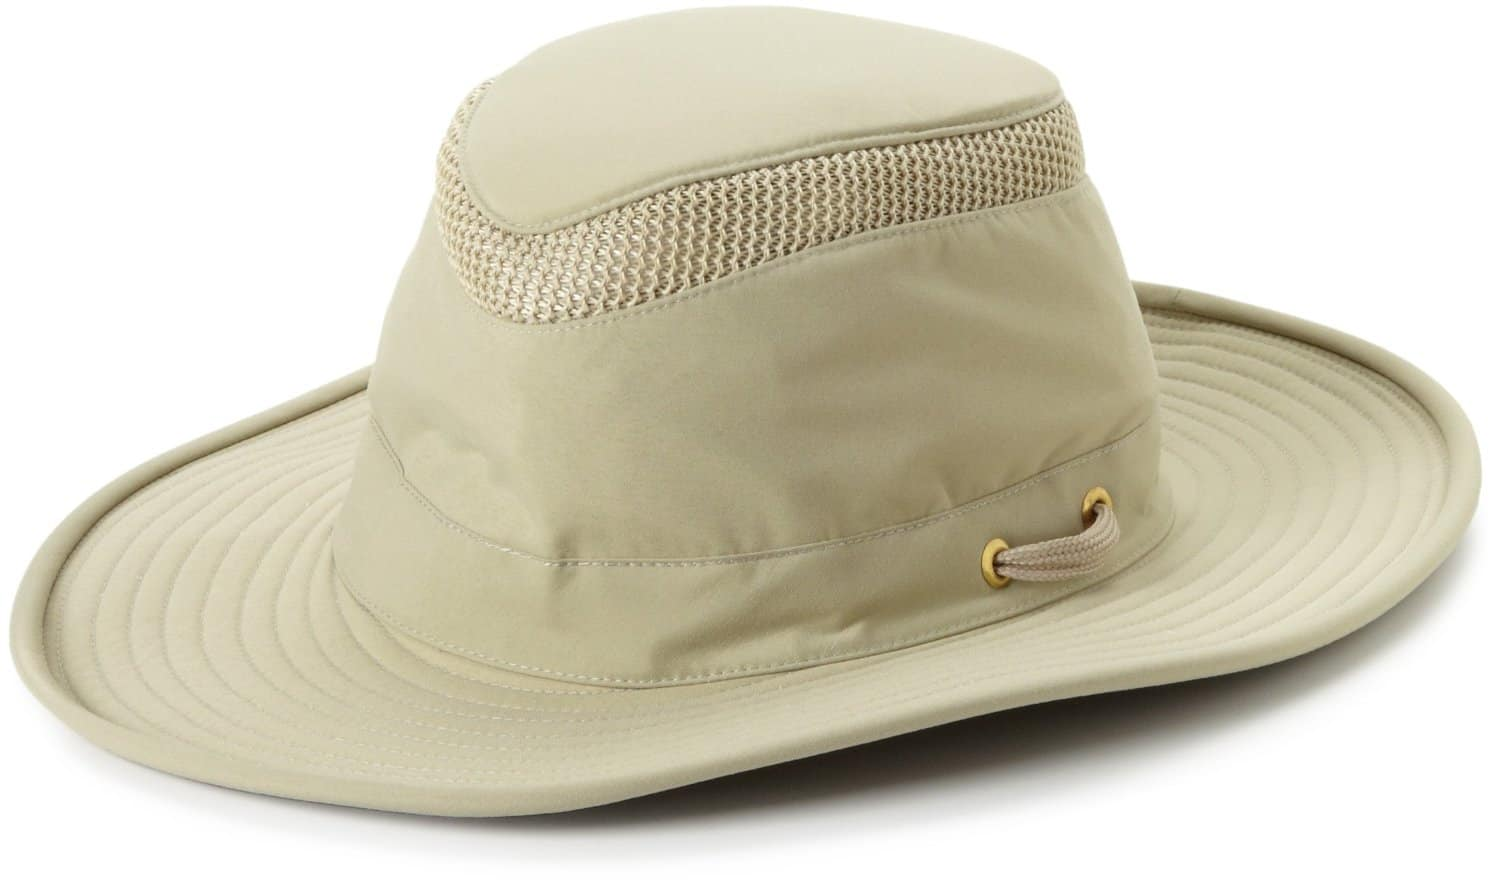 tilley unisex hat my itchy travel feet